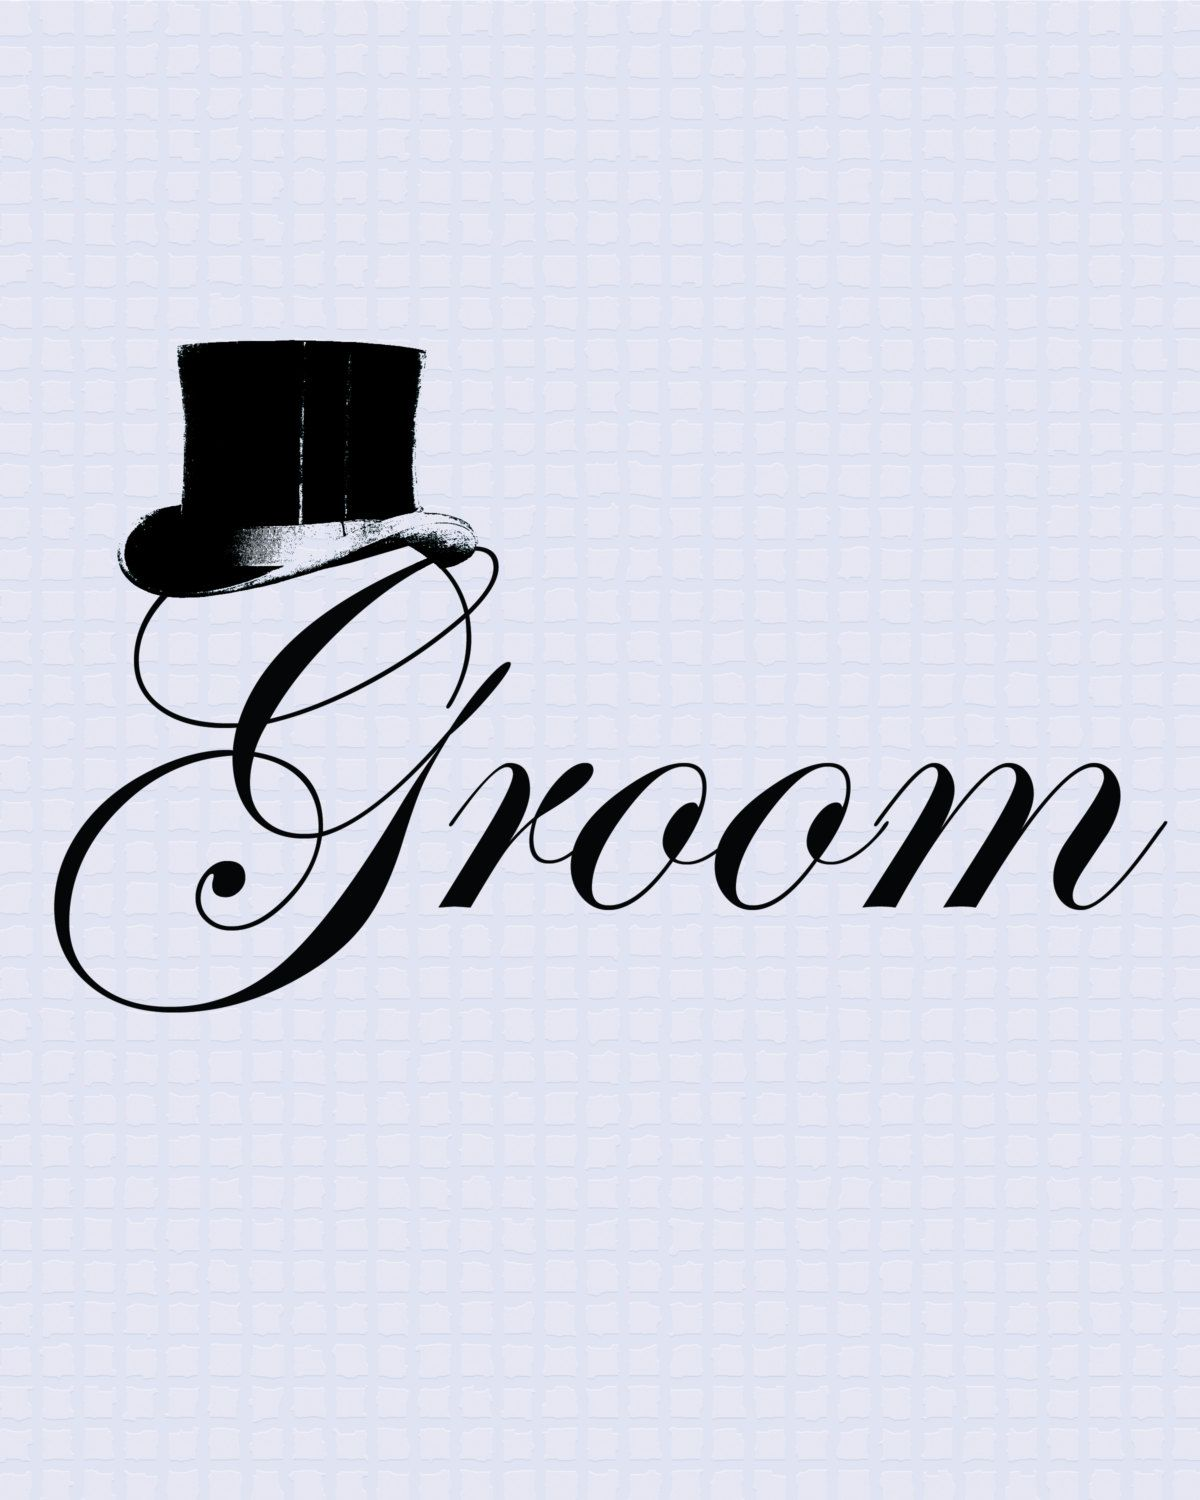 Groom printable ClipArt, Wedding label, Wedding sign.